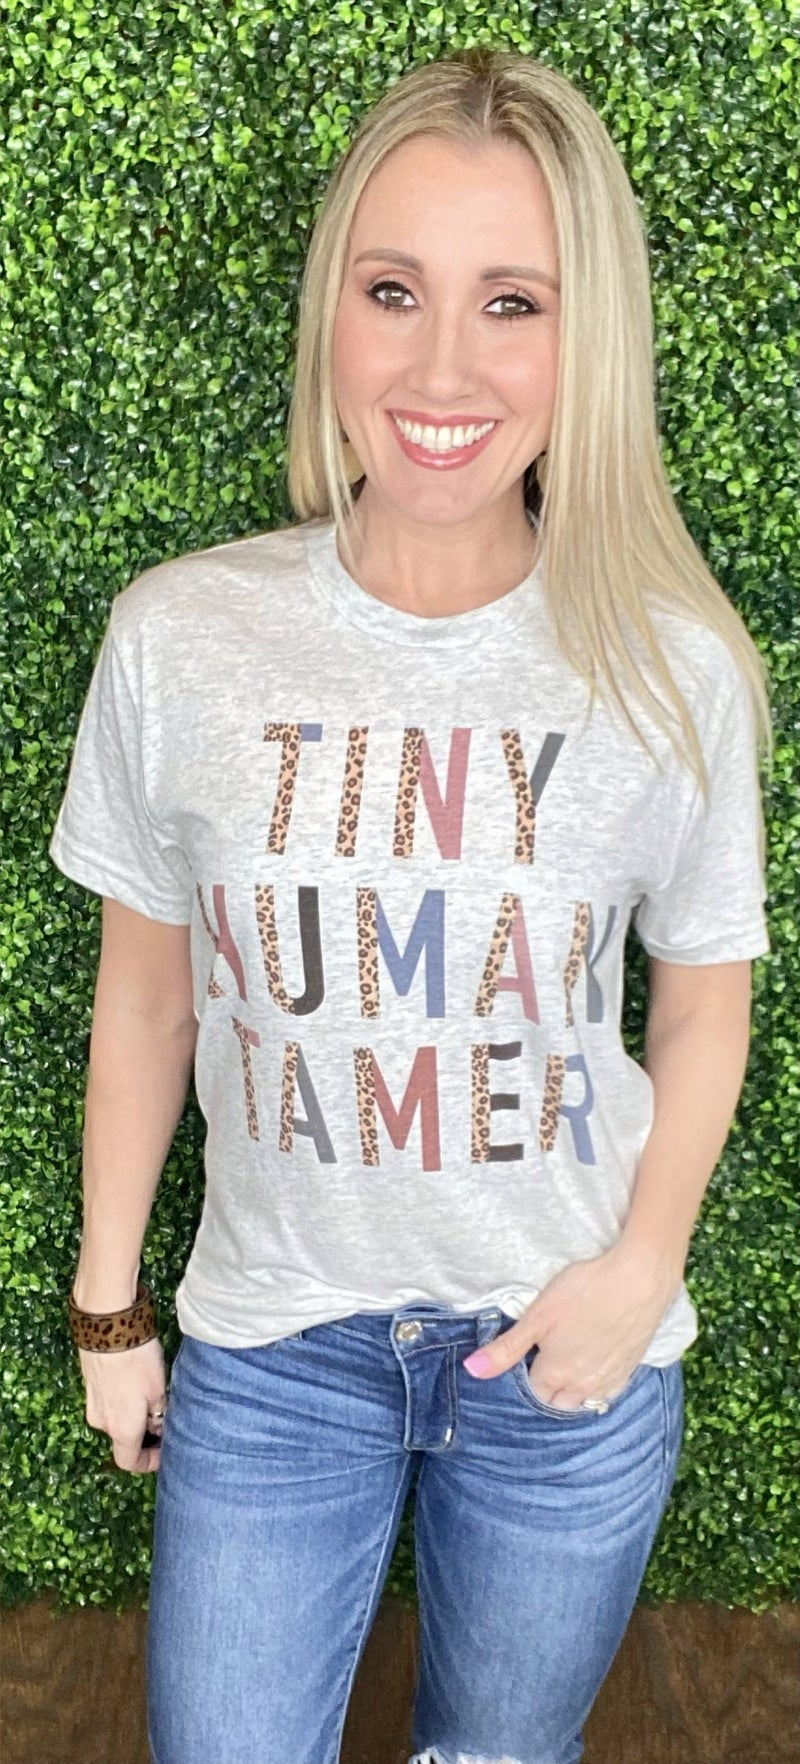 Tiny Human Tamer Graphic Tee